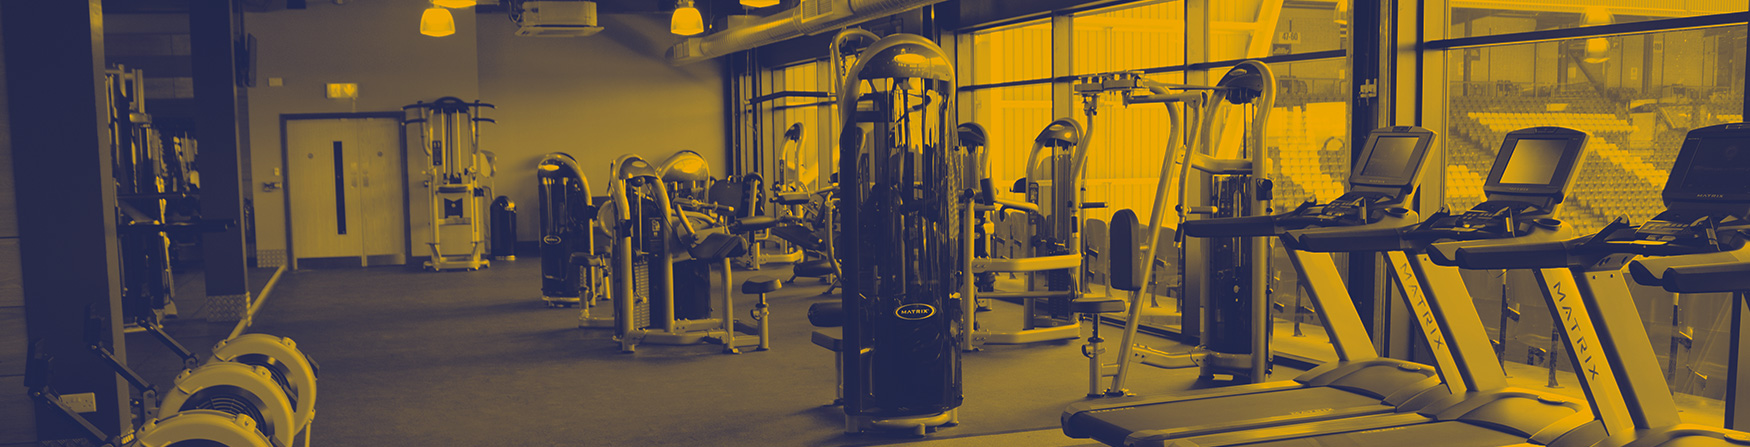 Banner image of gym equipment